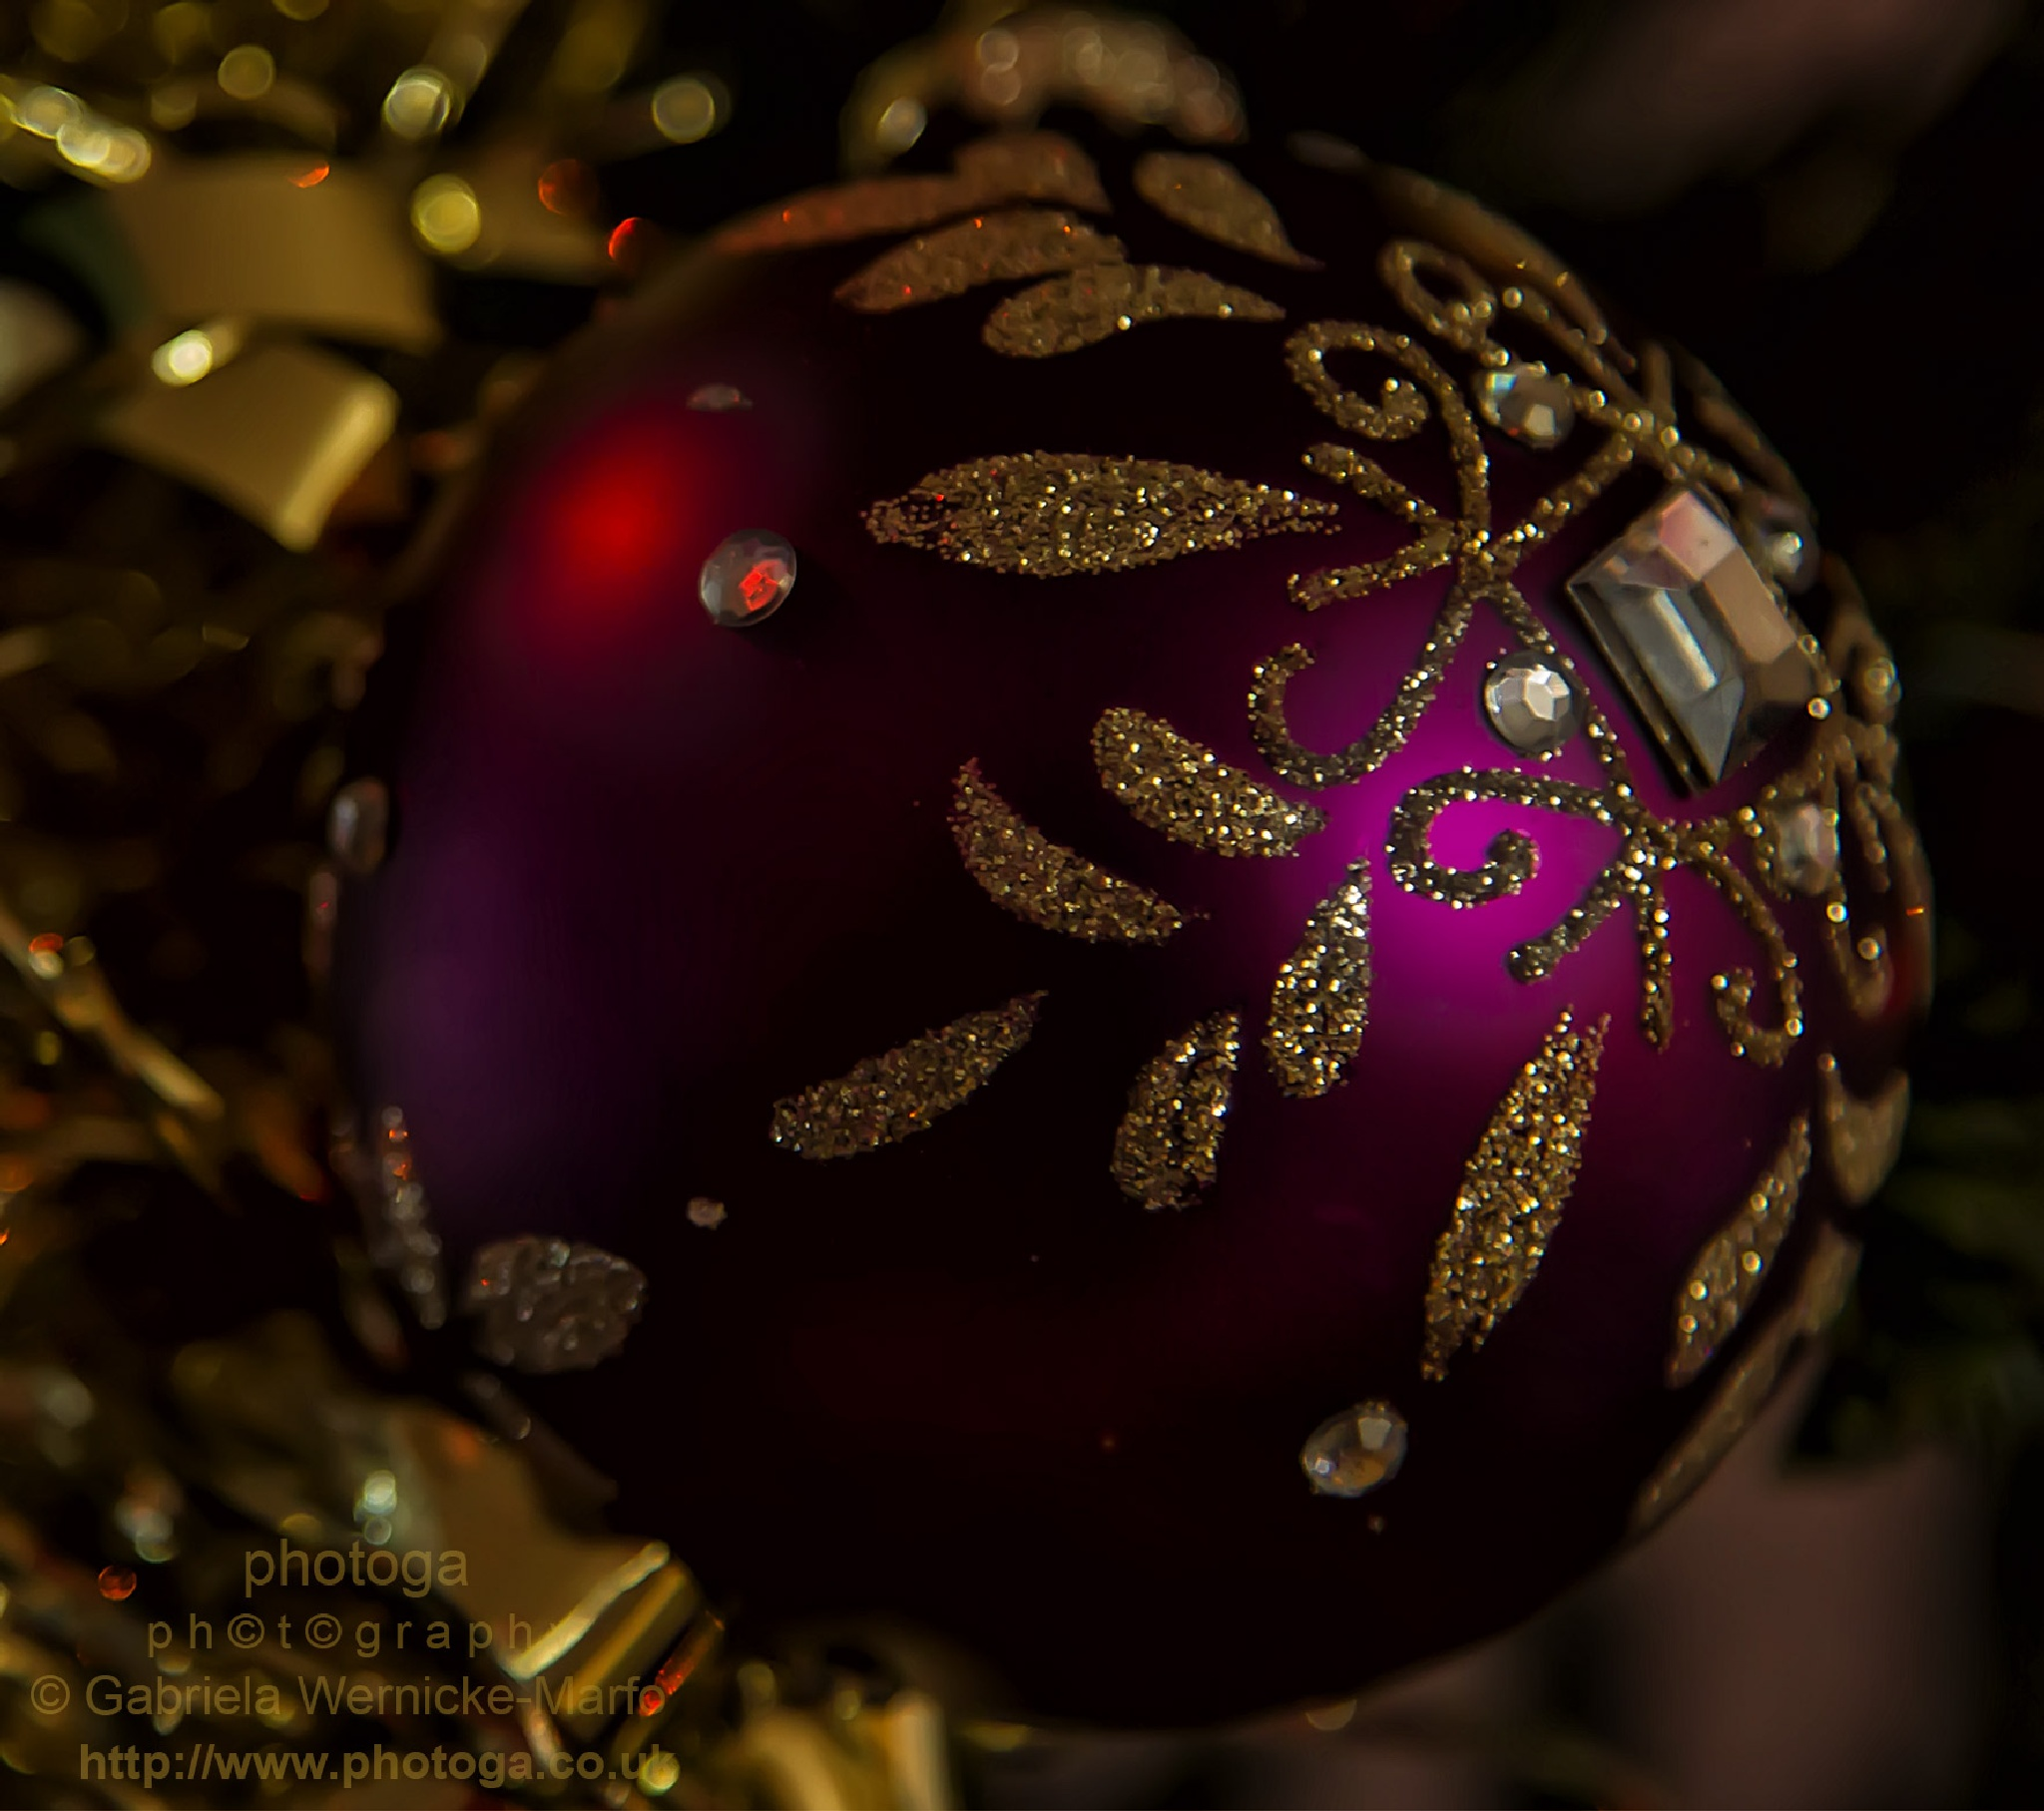 Christmas Time by photogaphotography